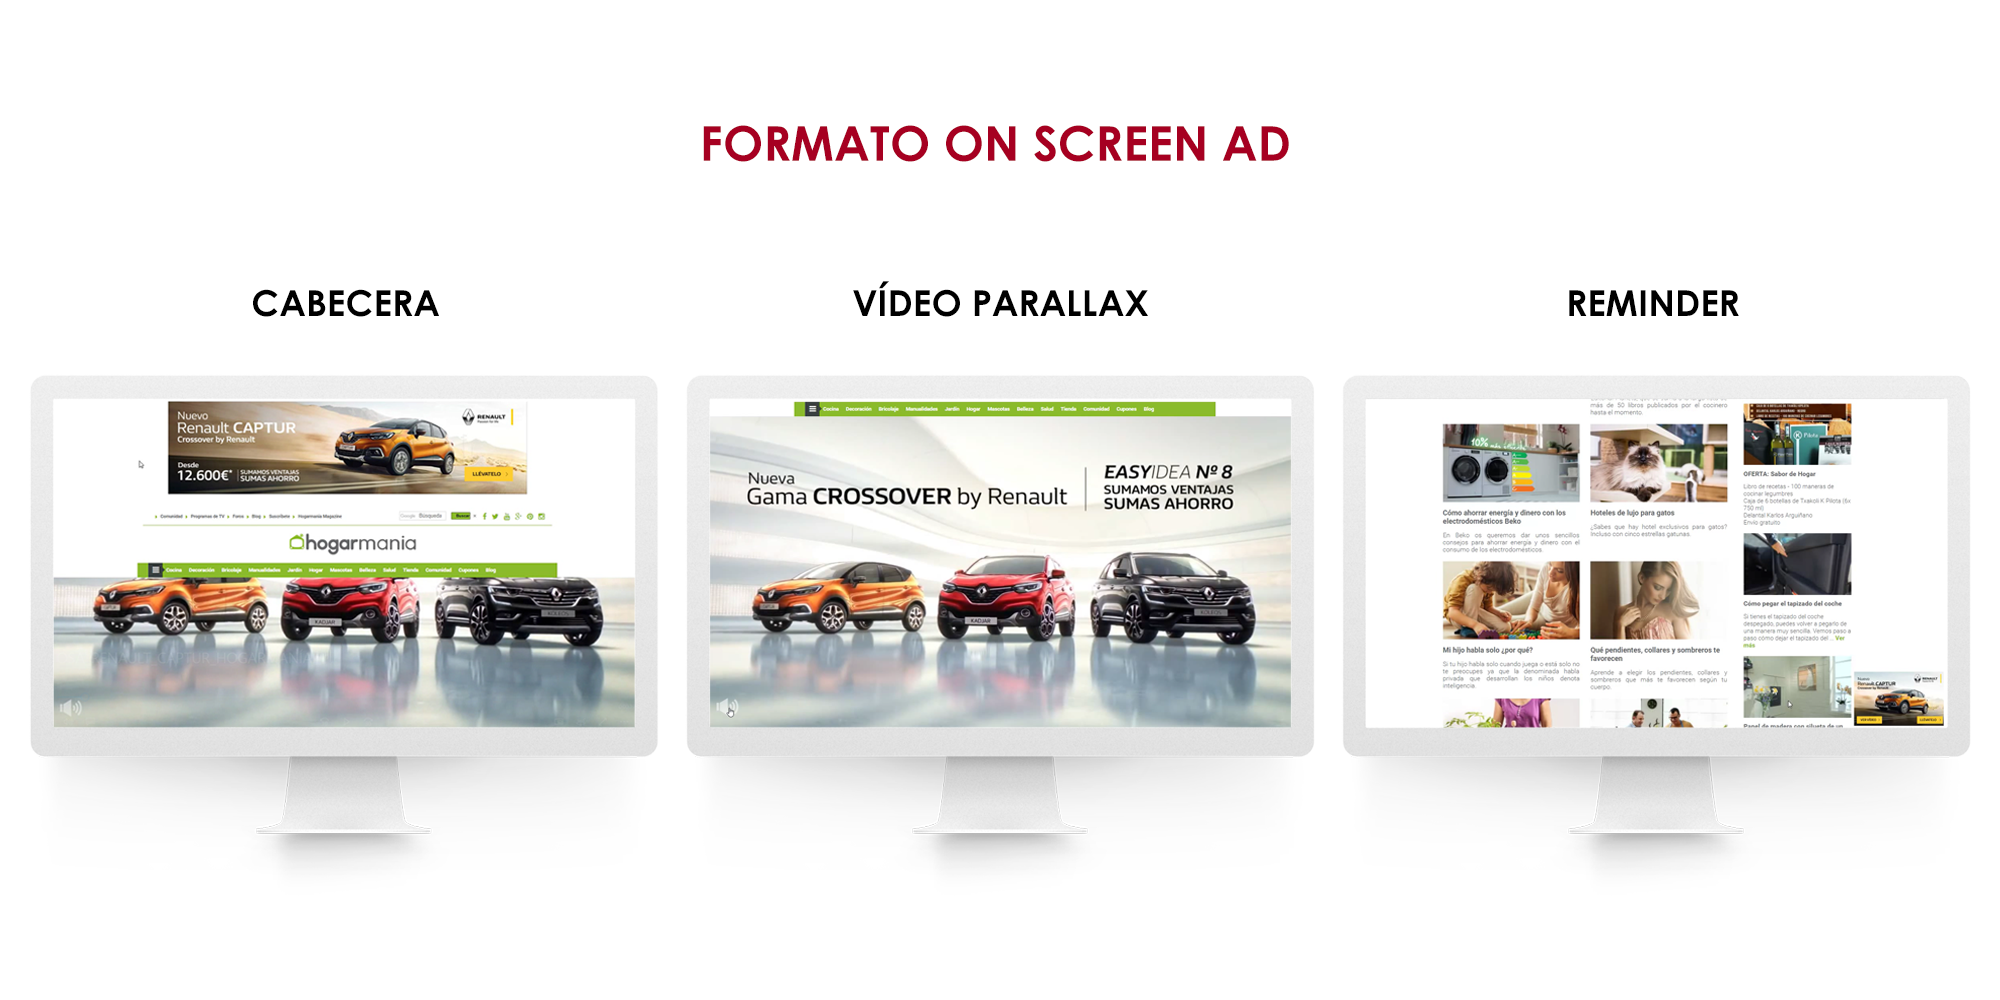 Fotografia Formato On Screen Ad